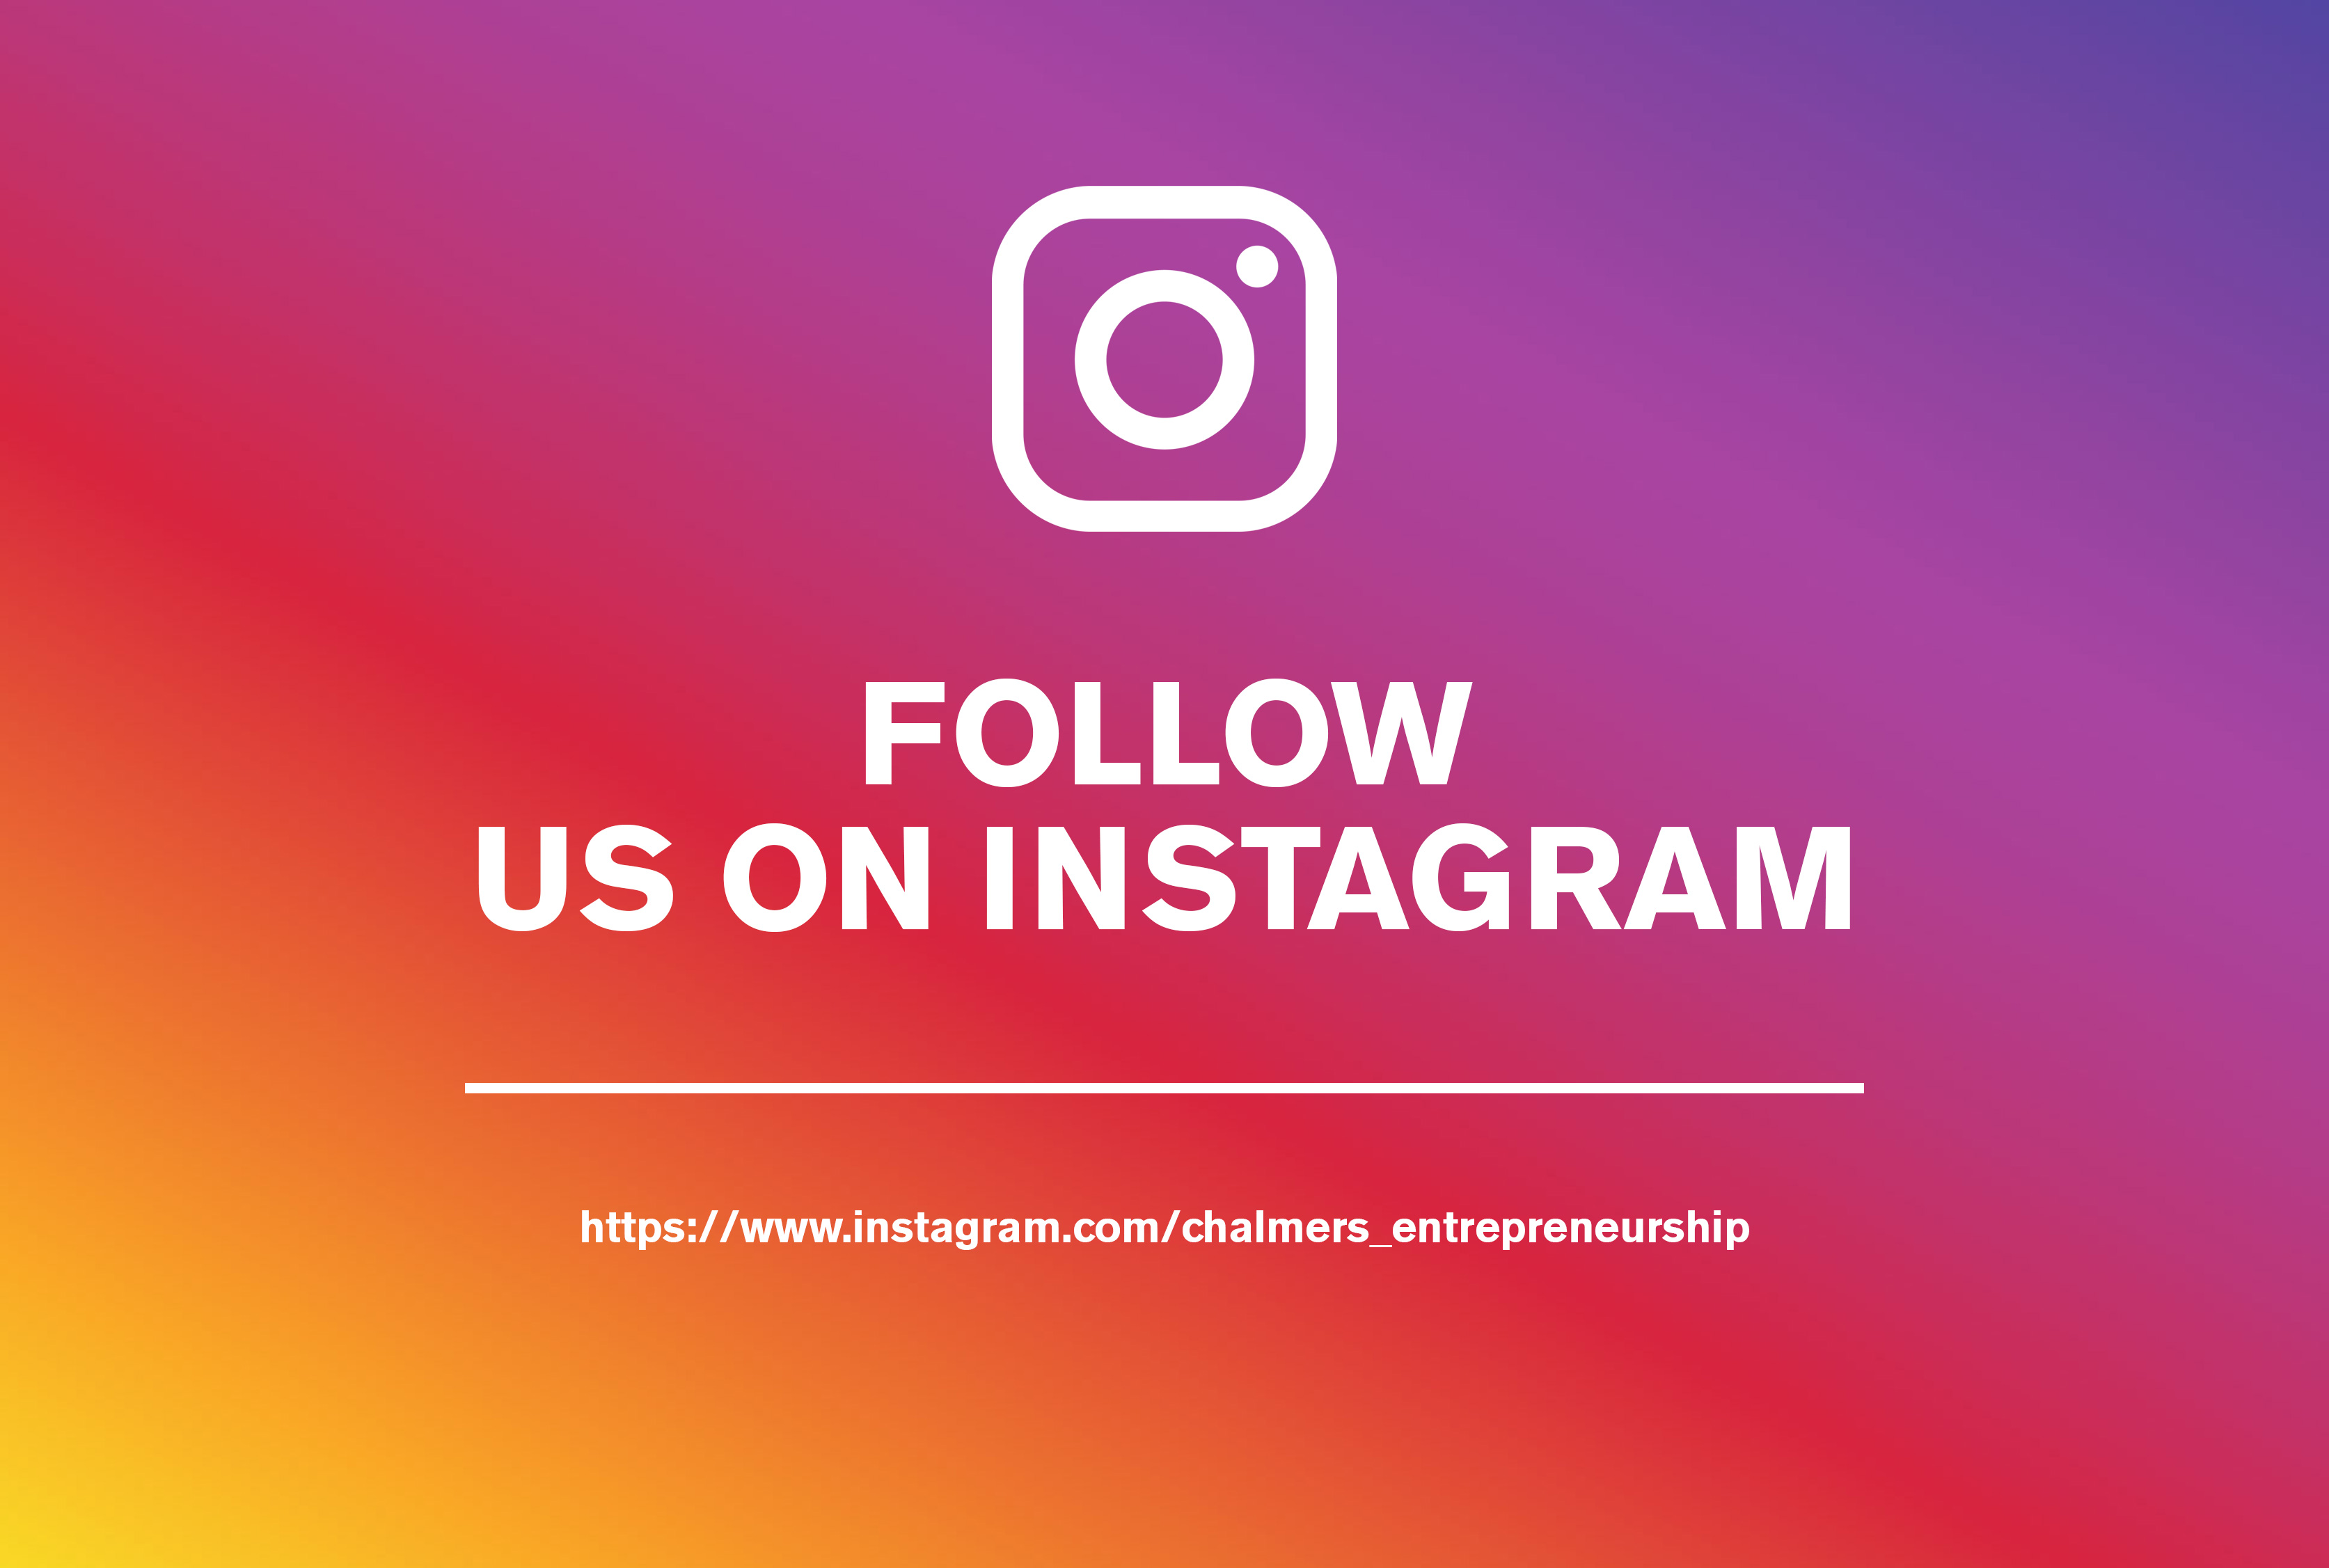 Instagram Chalmers School of Entrepreneurship